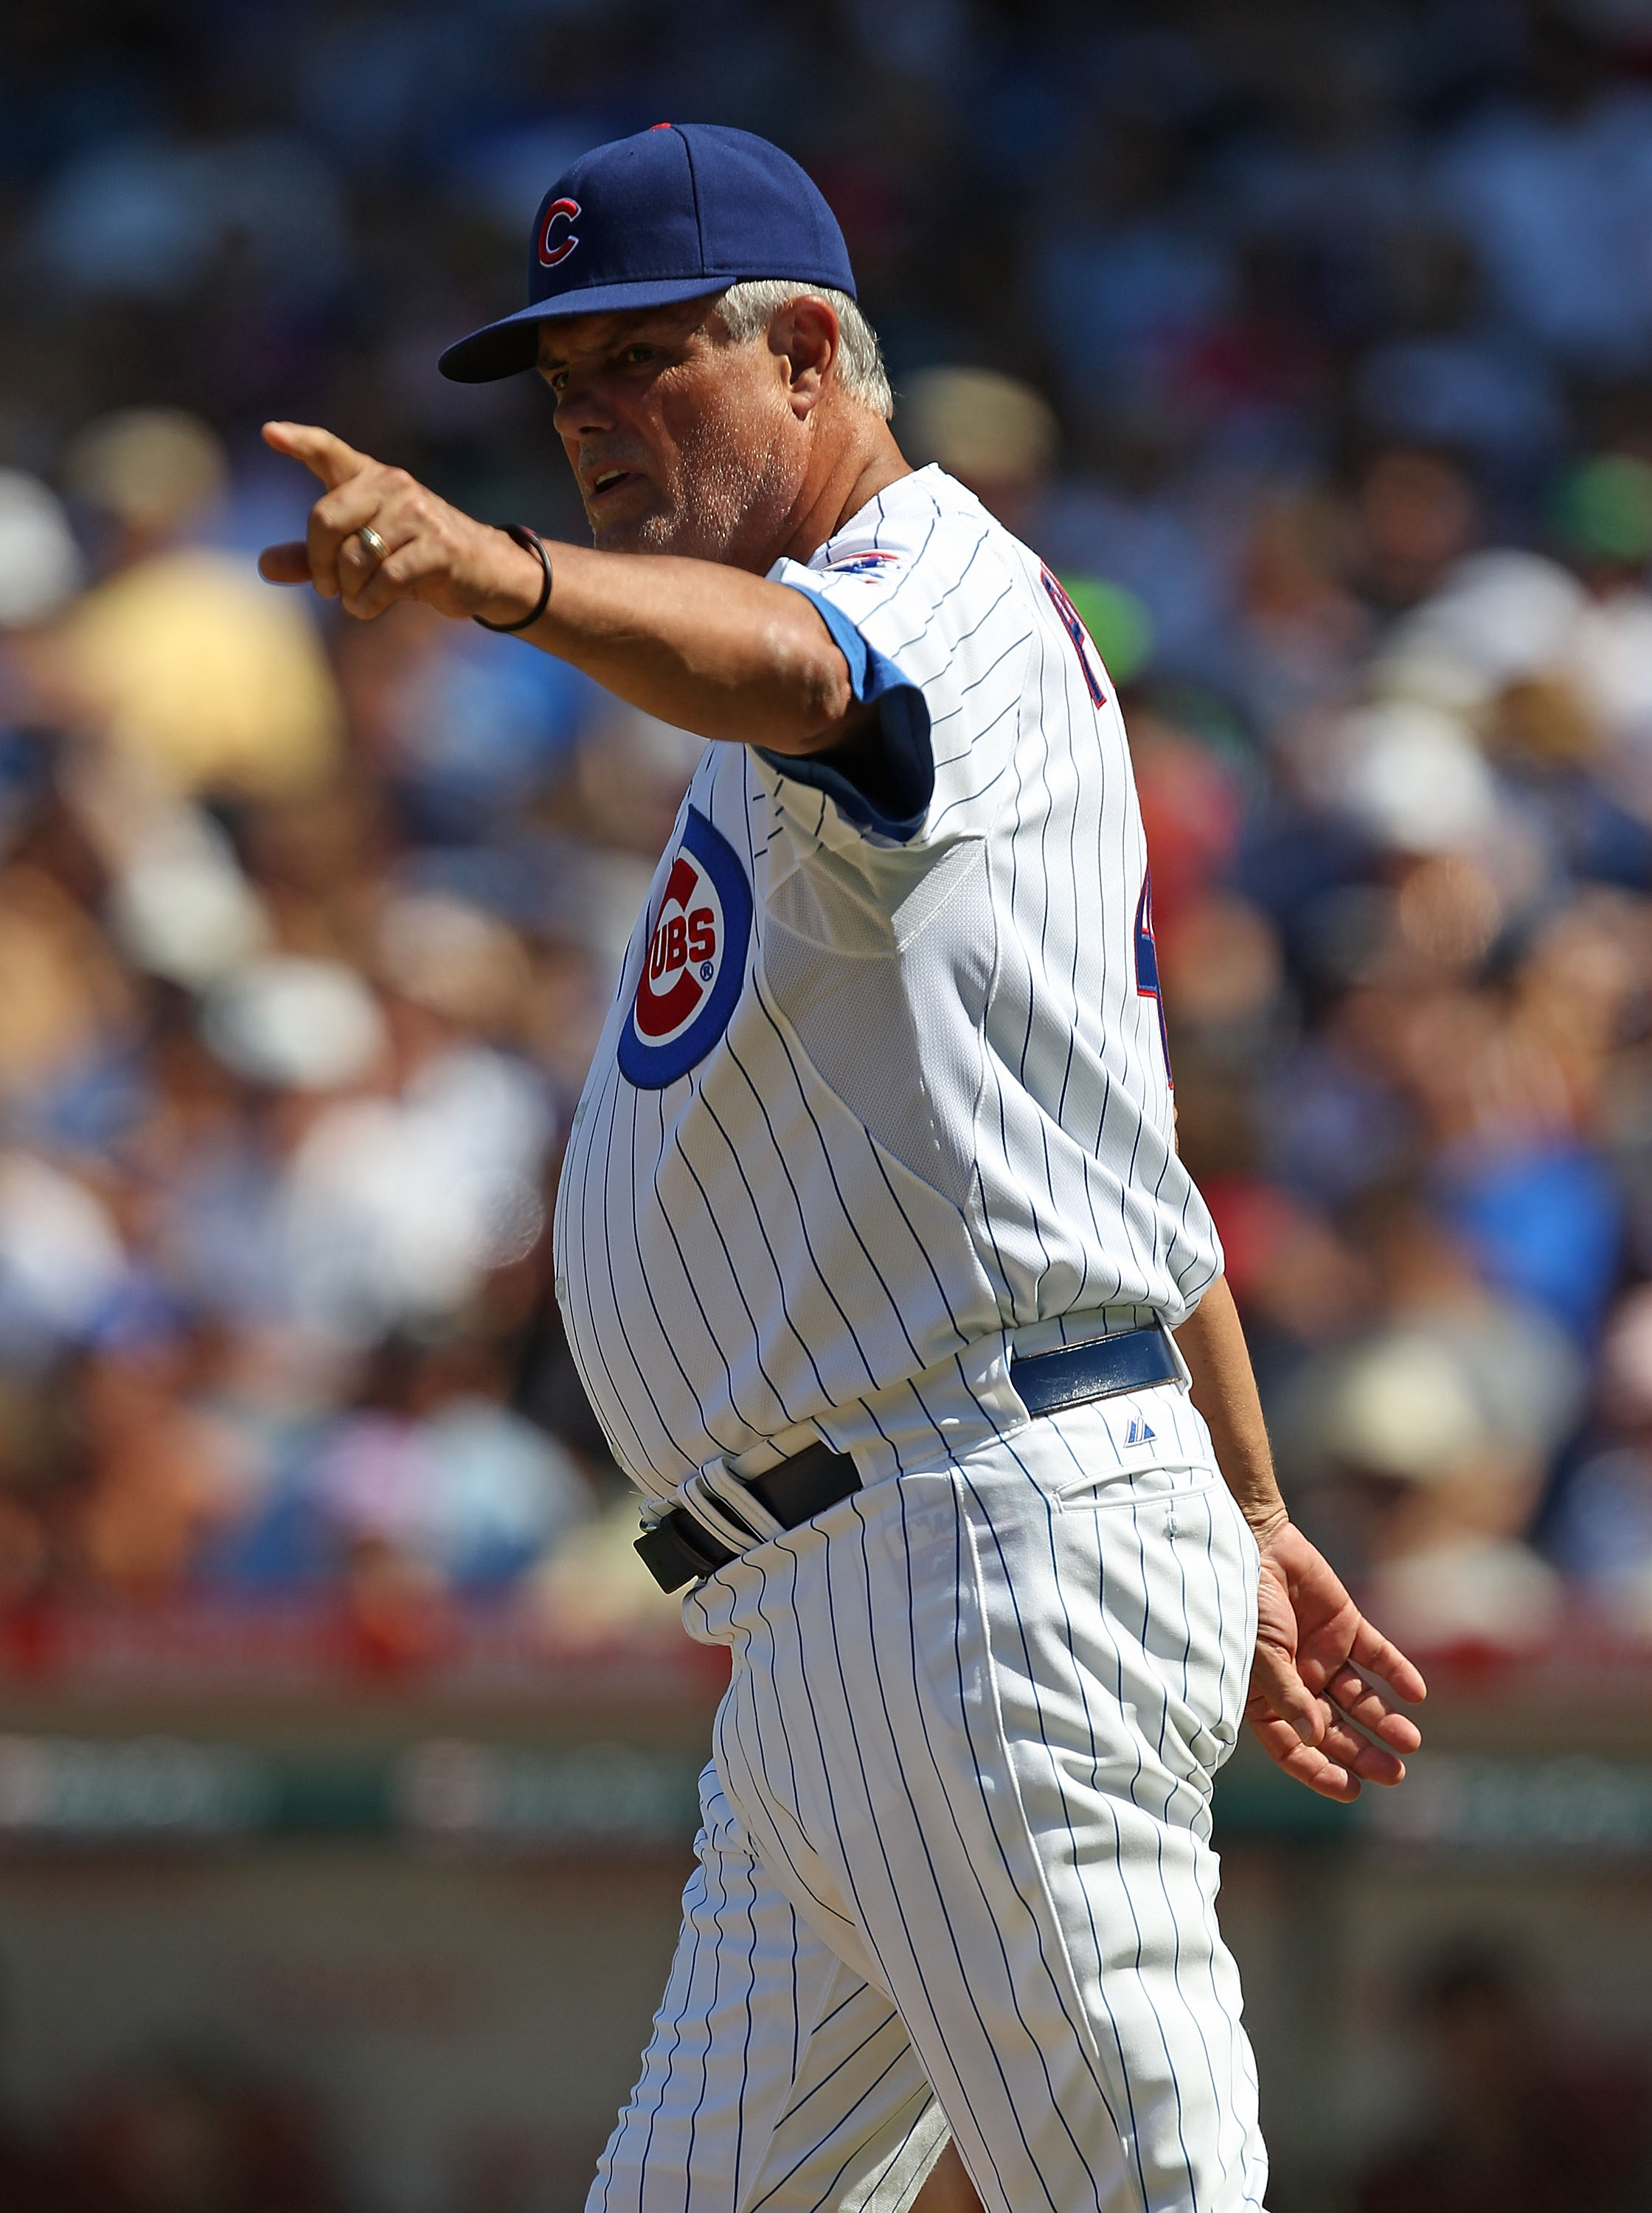 CHICAGO - JULY 21: Manager Lou Piniella #41 of the Chicago Cubs calls for a new pitcher during a game against the Houston Astros at Wrigley Field on July 21, 2010 in Chicago, Illinois. The Astros defeated the Cubs 4-3 in 12 innings. (Photo by Jonathan Dan